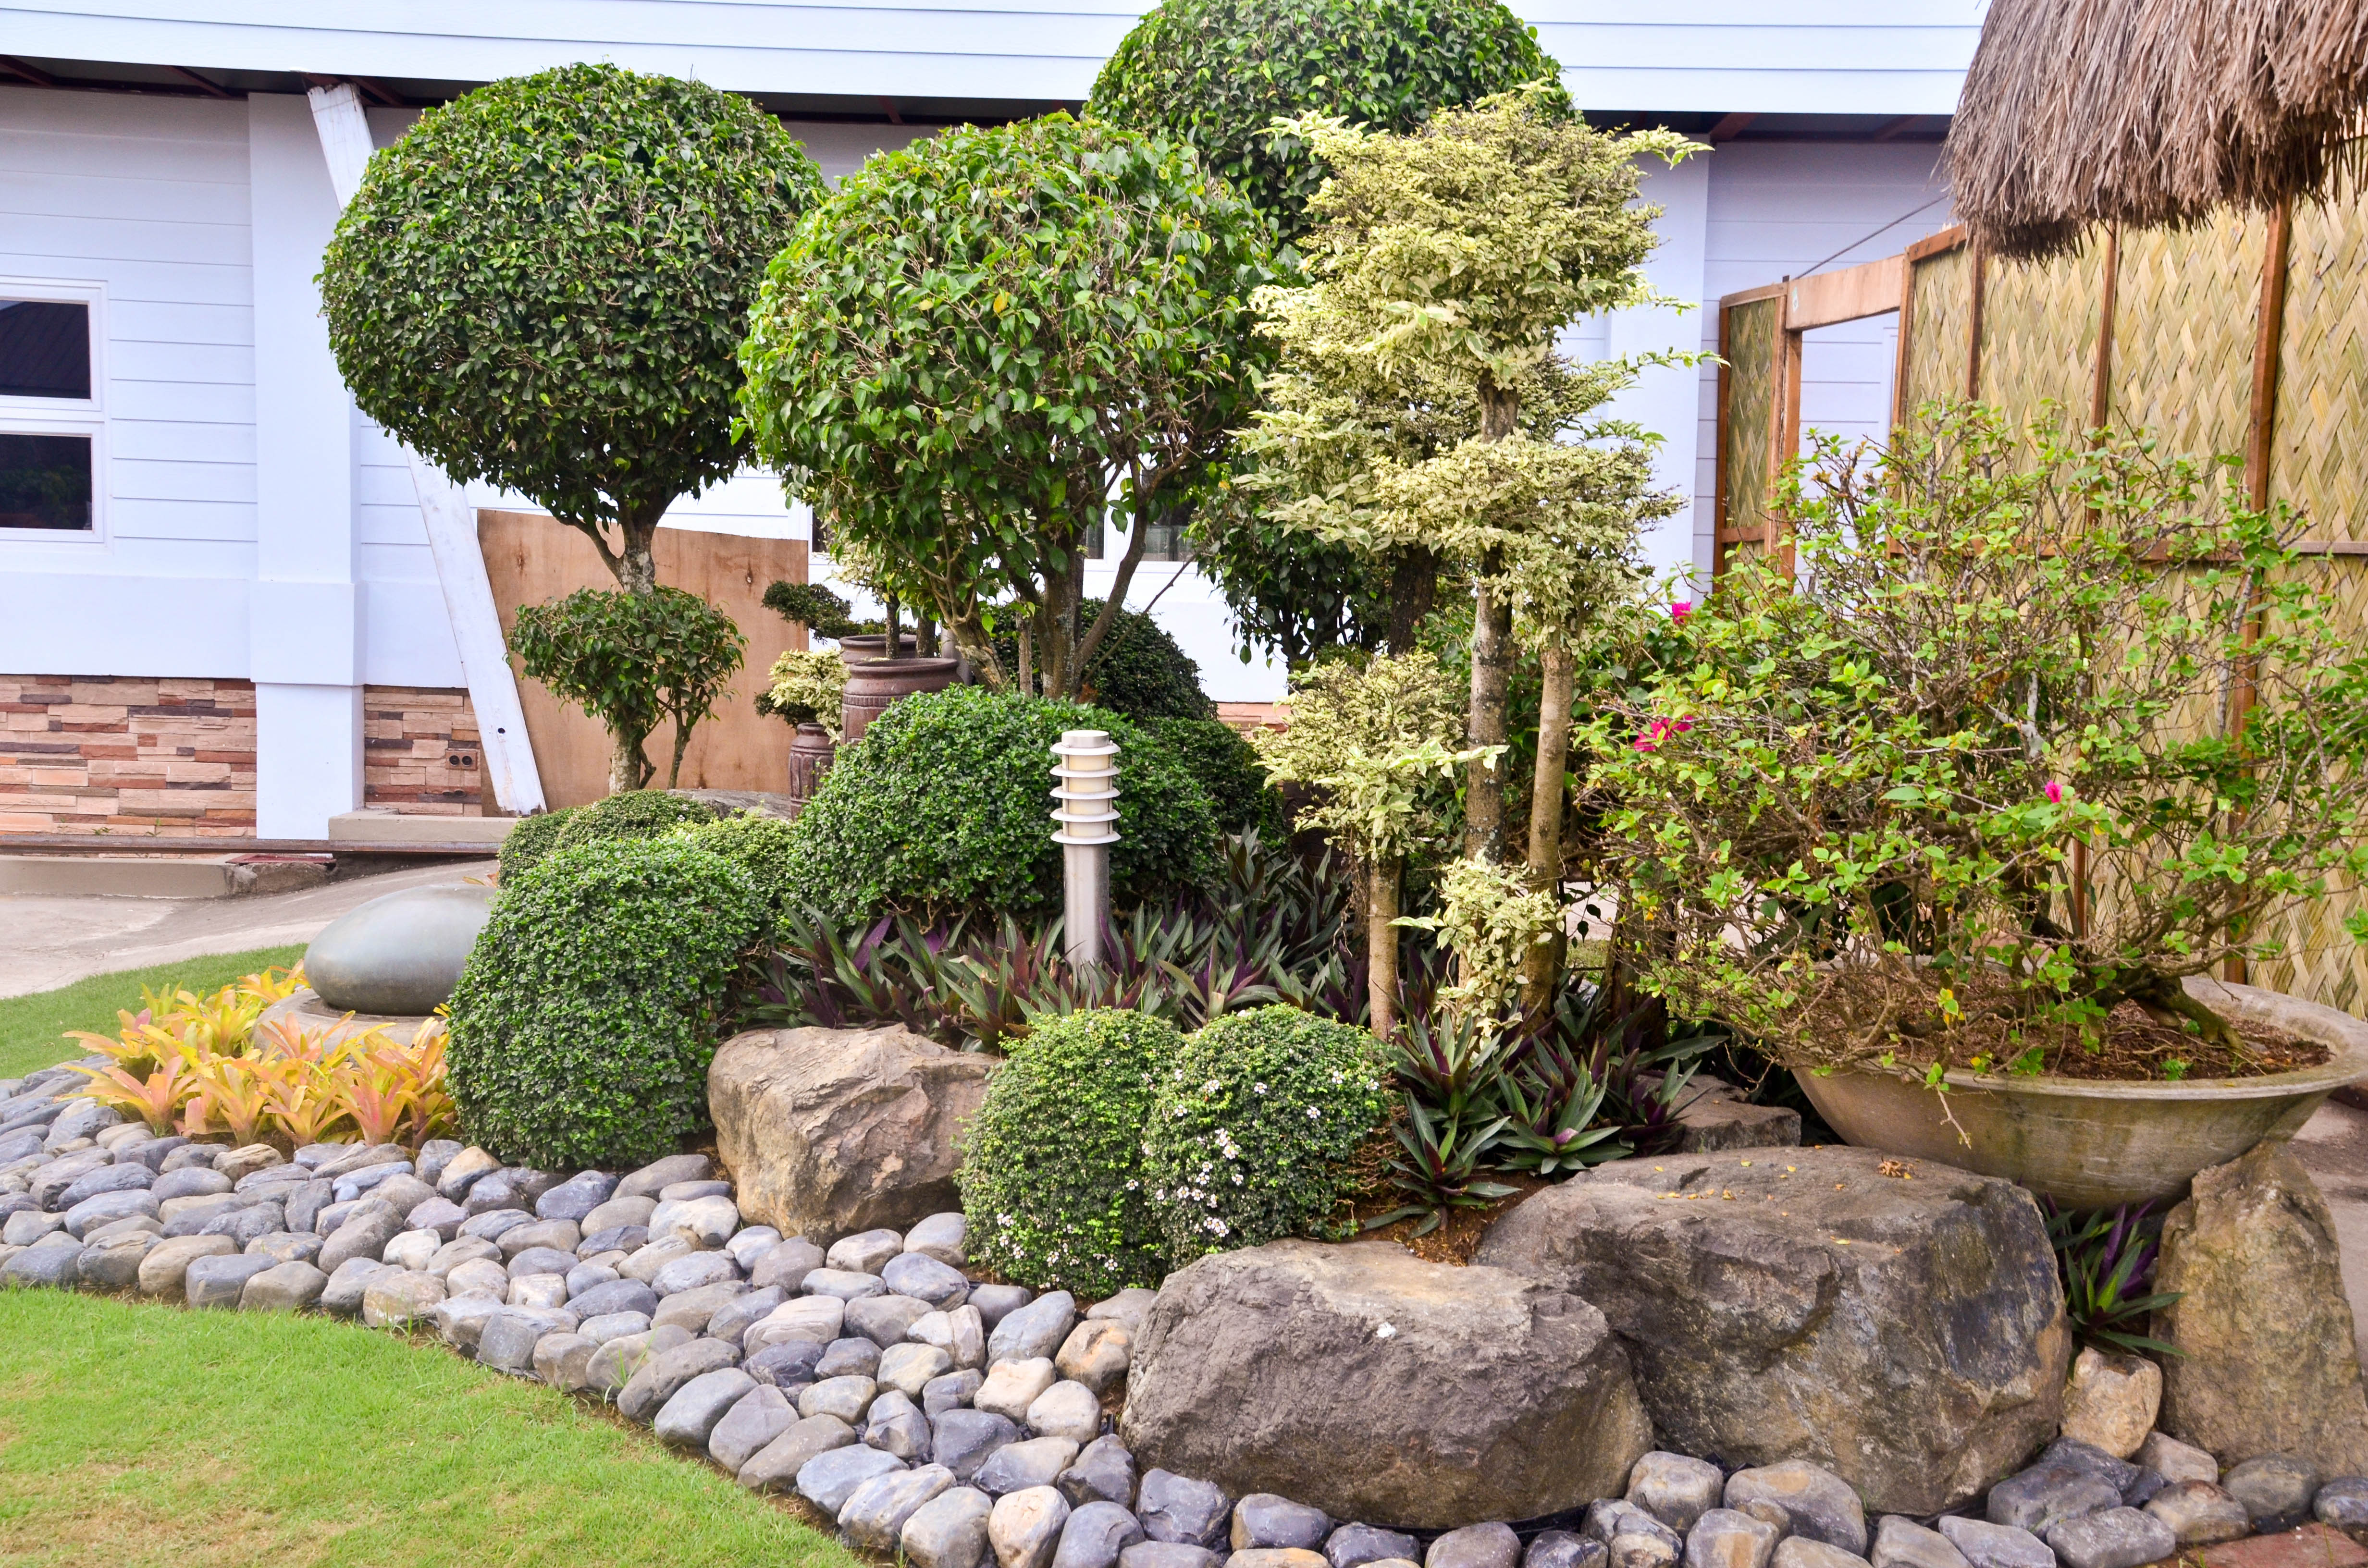 landscaping with rocks how to landscape with rocks: 6 steps (with pictures) - wikihow IQUELLI